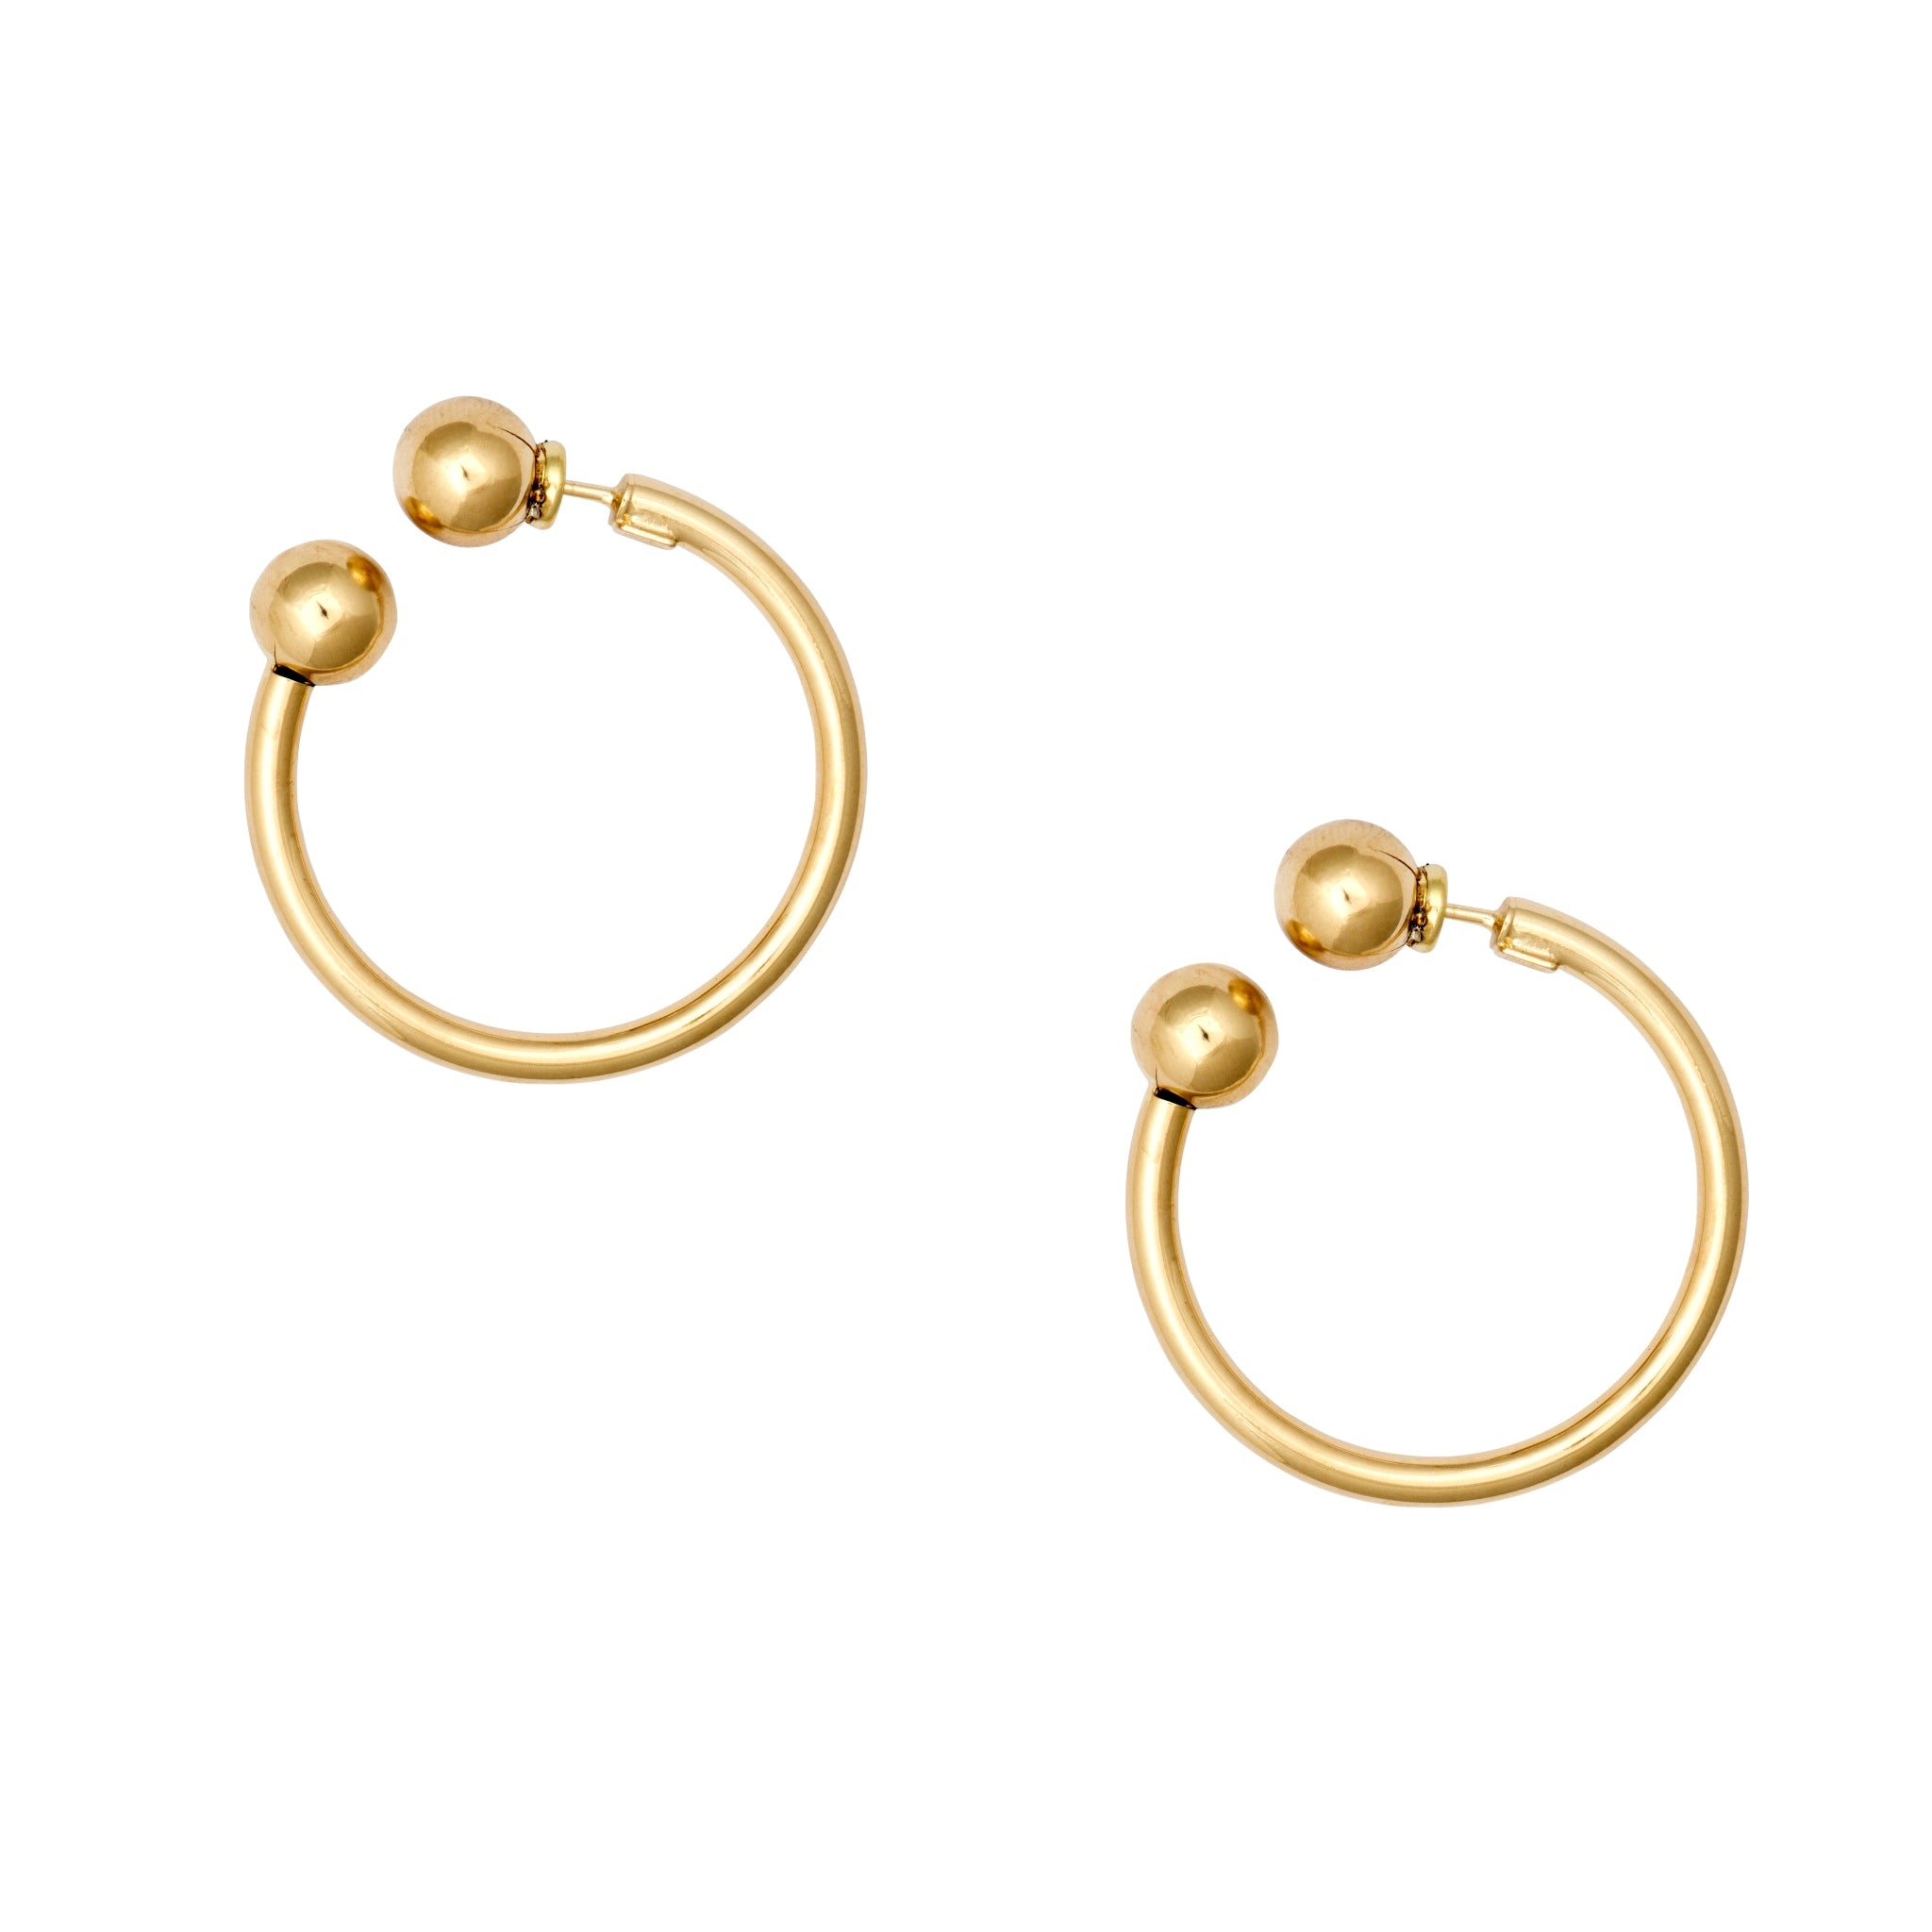 La TORO Hoops - Gold - SALE